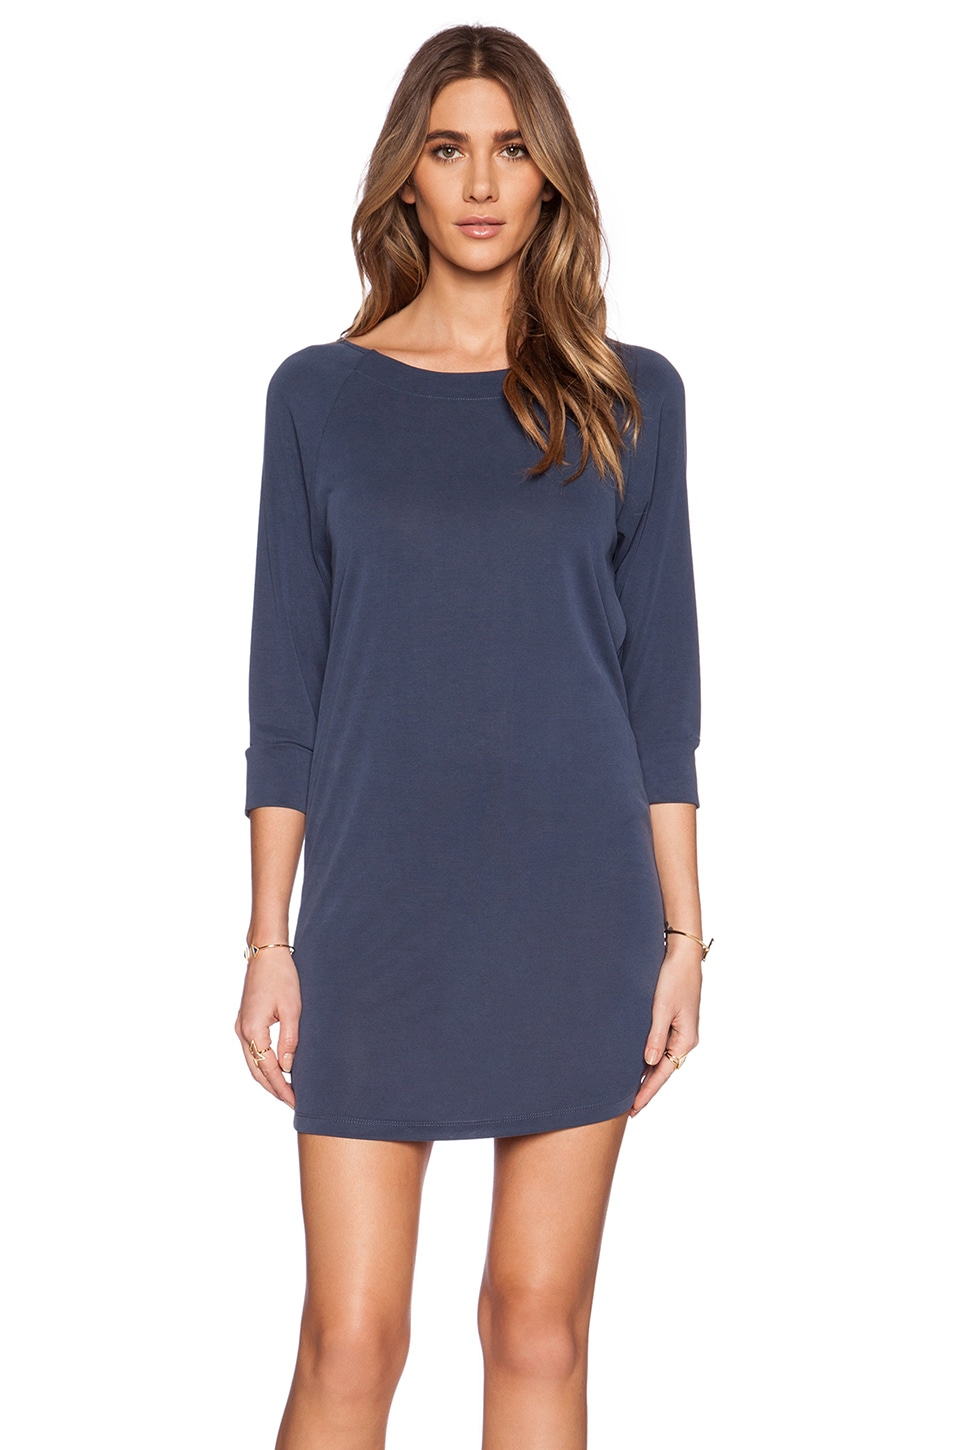 Splendid Sandwash Jersey Dress in Greystone